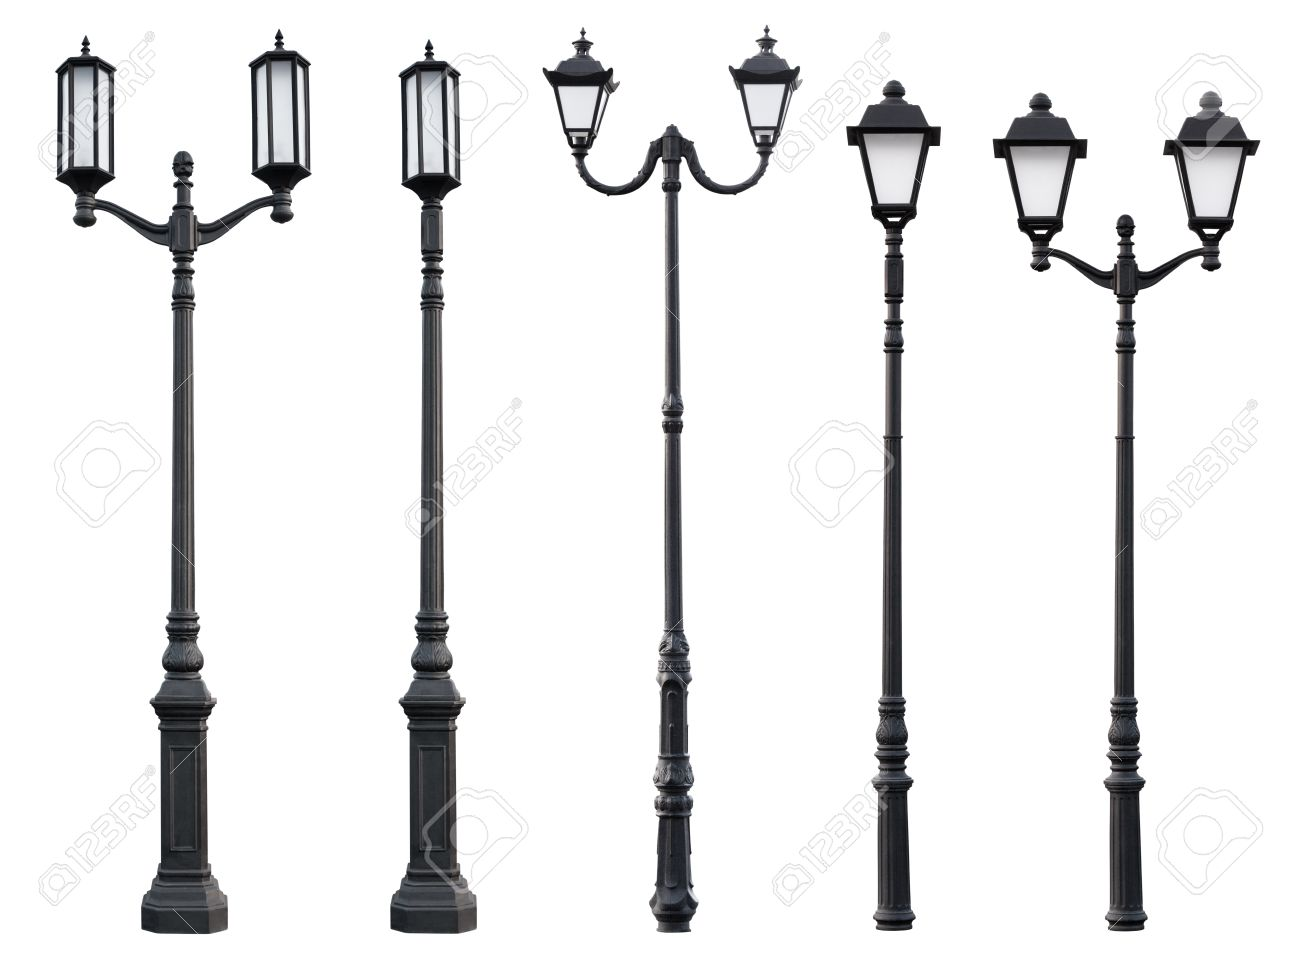 street stock stockphoto post lamp free photo pv